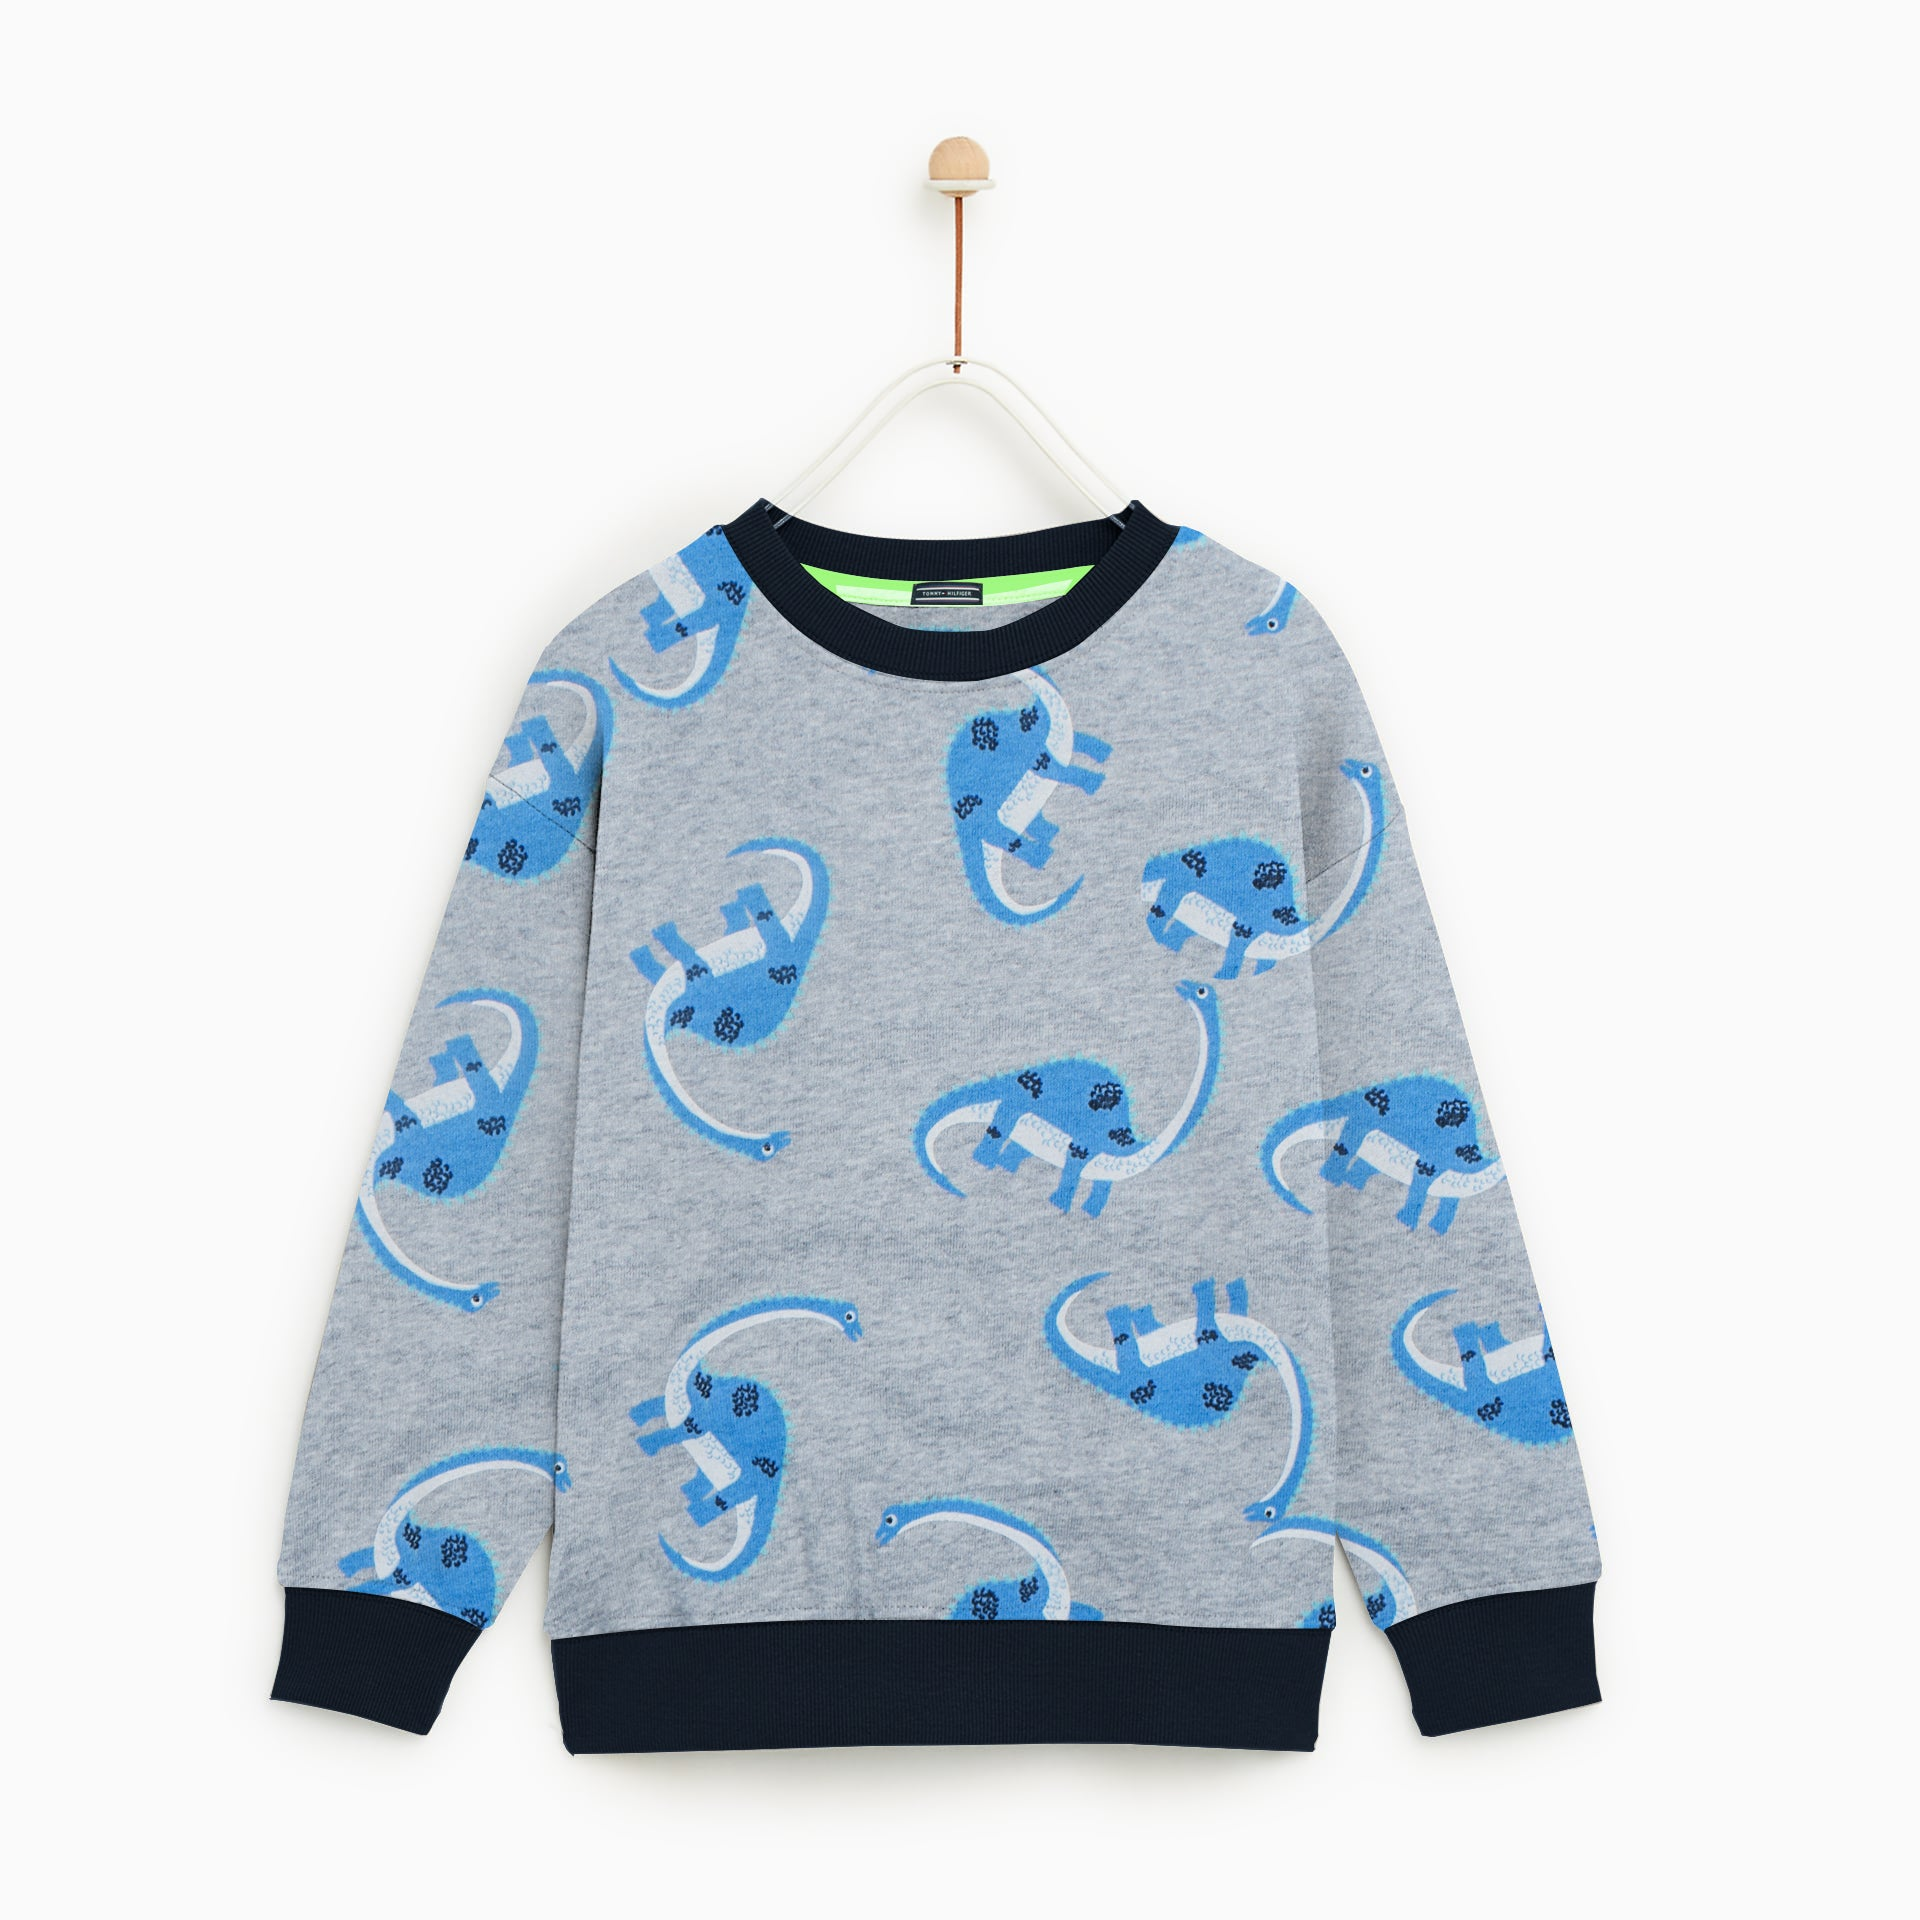 Tommy Hilfiger Crew Neck Fleece Sweatshirt For Kids-All Over Printed-NA7742